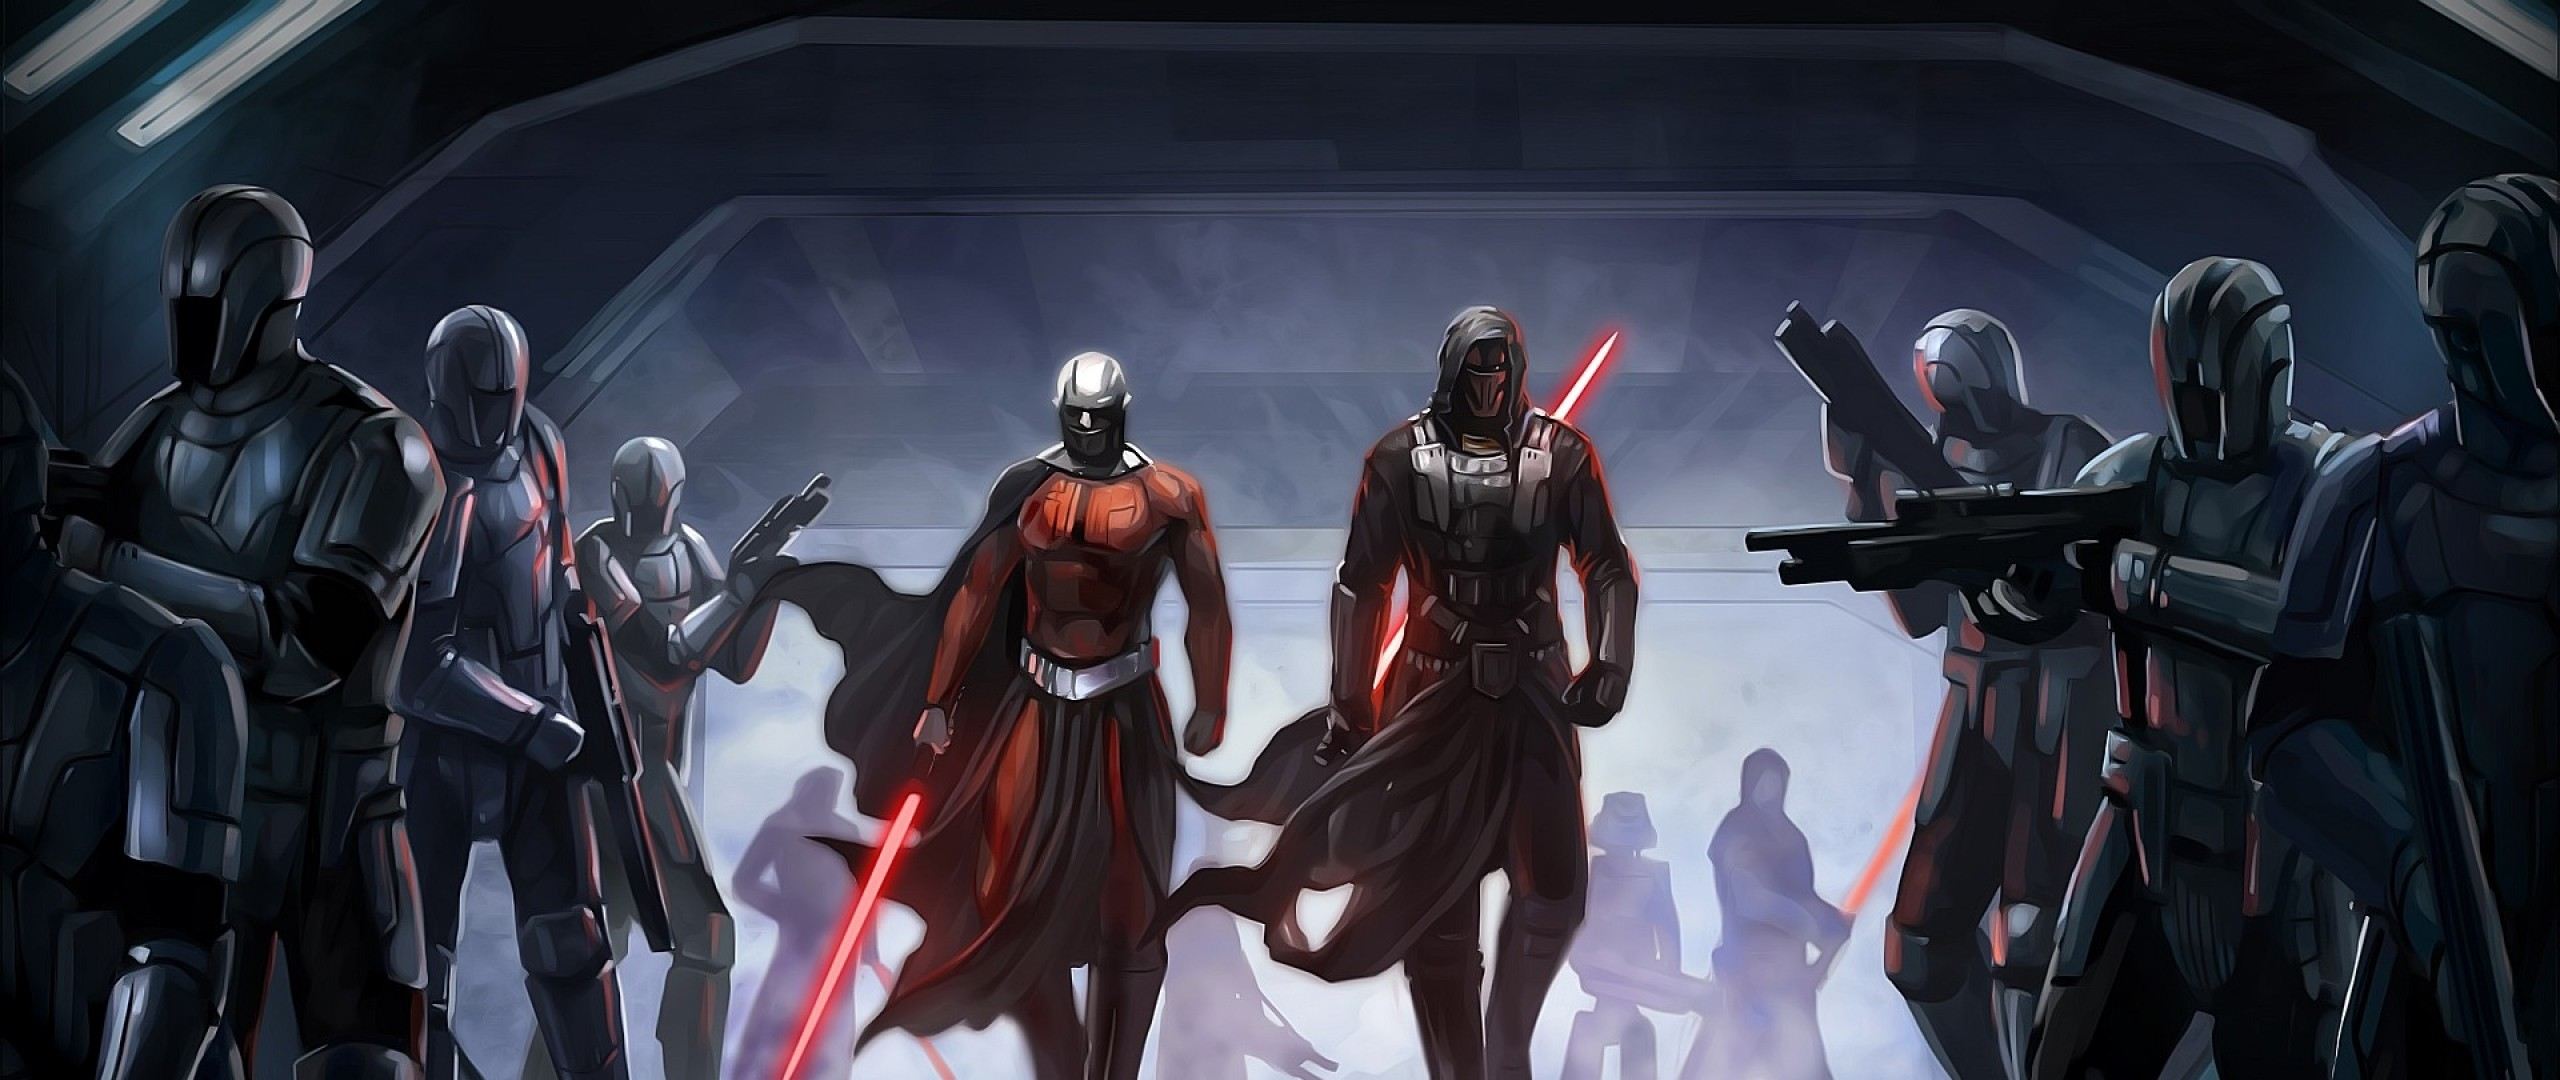 2560x1080 Preview wallpaper star wars the old republic, guard, characters,  lightsabers